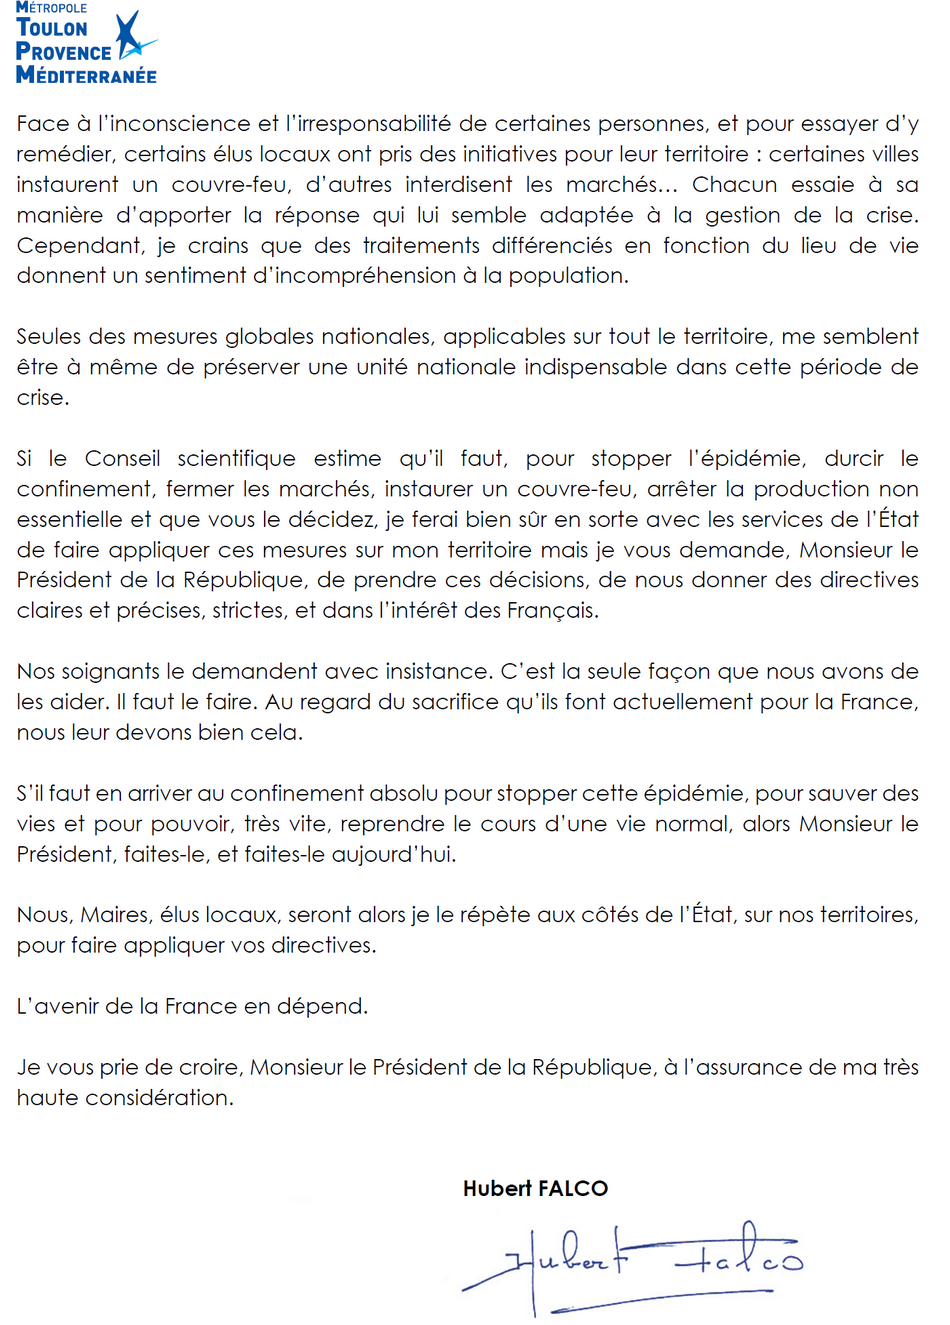 Courrier d'Hubert Falco au Pre´sident de la Re´publique 1